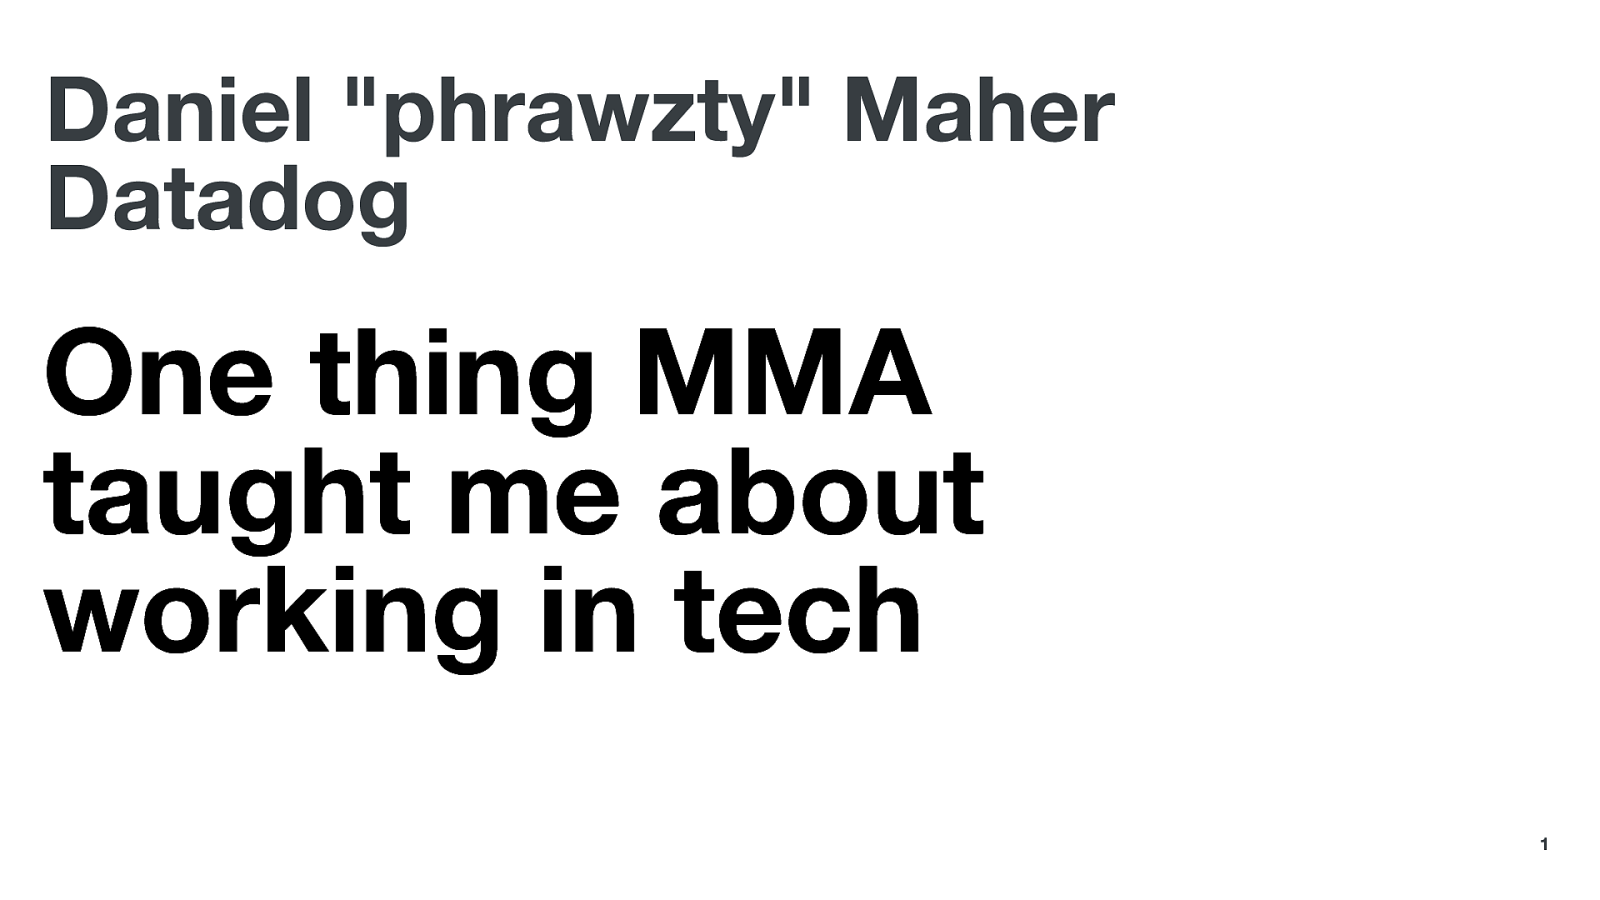 One thing MMA taught me about working in tech